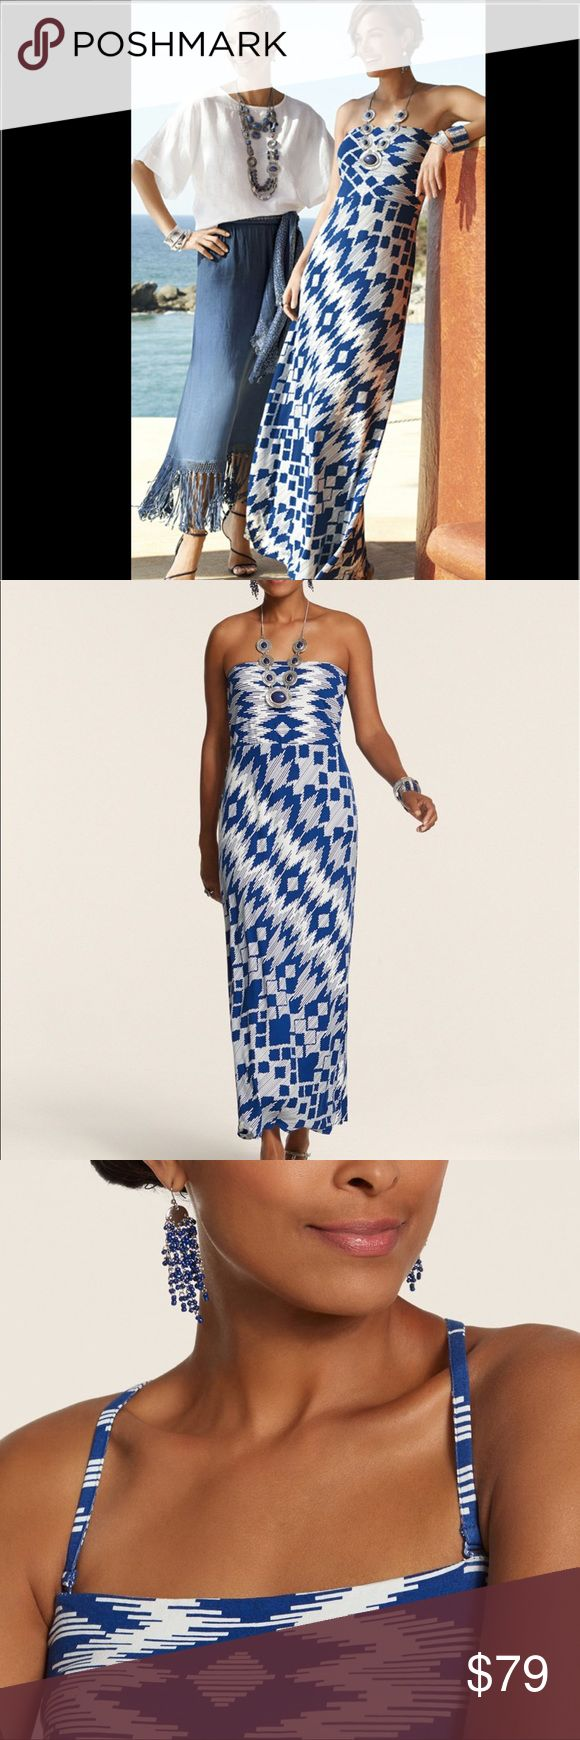 CHICO'S MAXI DRESS Very attractive blue and white maxi dress with adjustable straps or wear strapless. Rayon with a touch a spandex. Very comfortable, wash and wear. Chico's size 3. Chico's Dresses Maxi